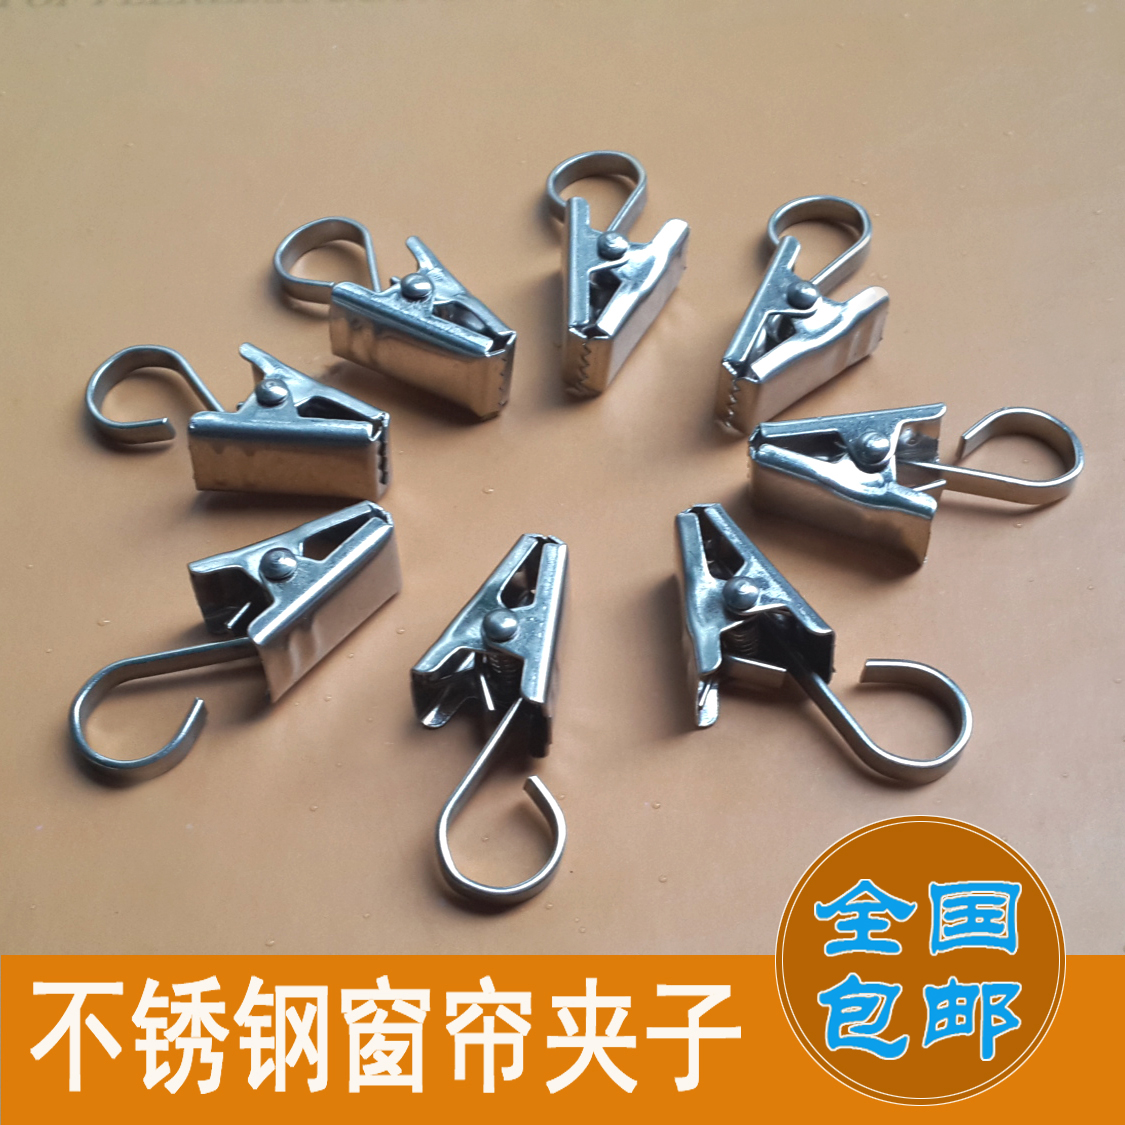 Curtain Clip Hooks Curtain Serrated Clip Stainless Steel 430 Band Magnetic Strong Metal Curtain Hook Hook Small Clip Curtain Accessories